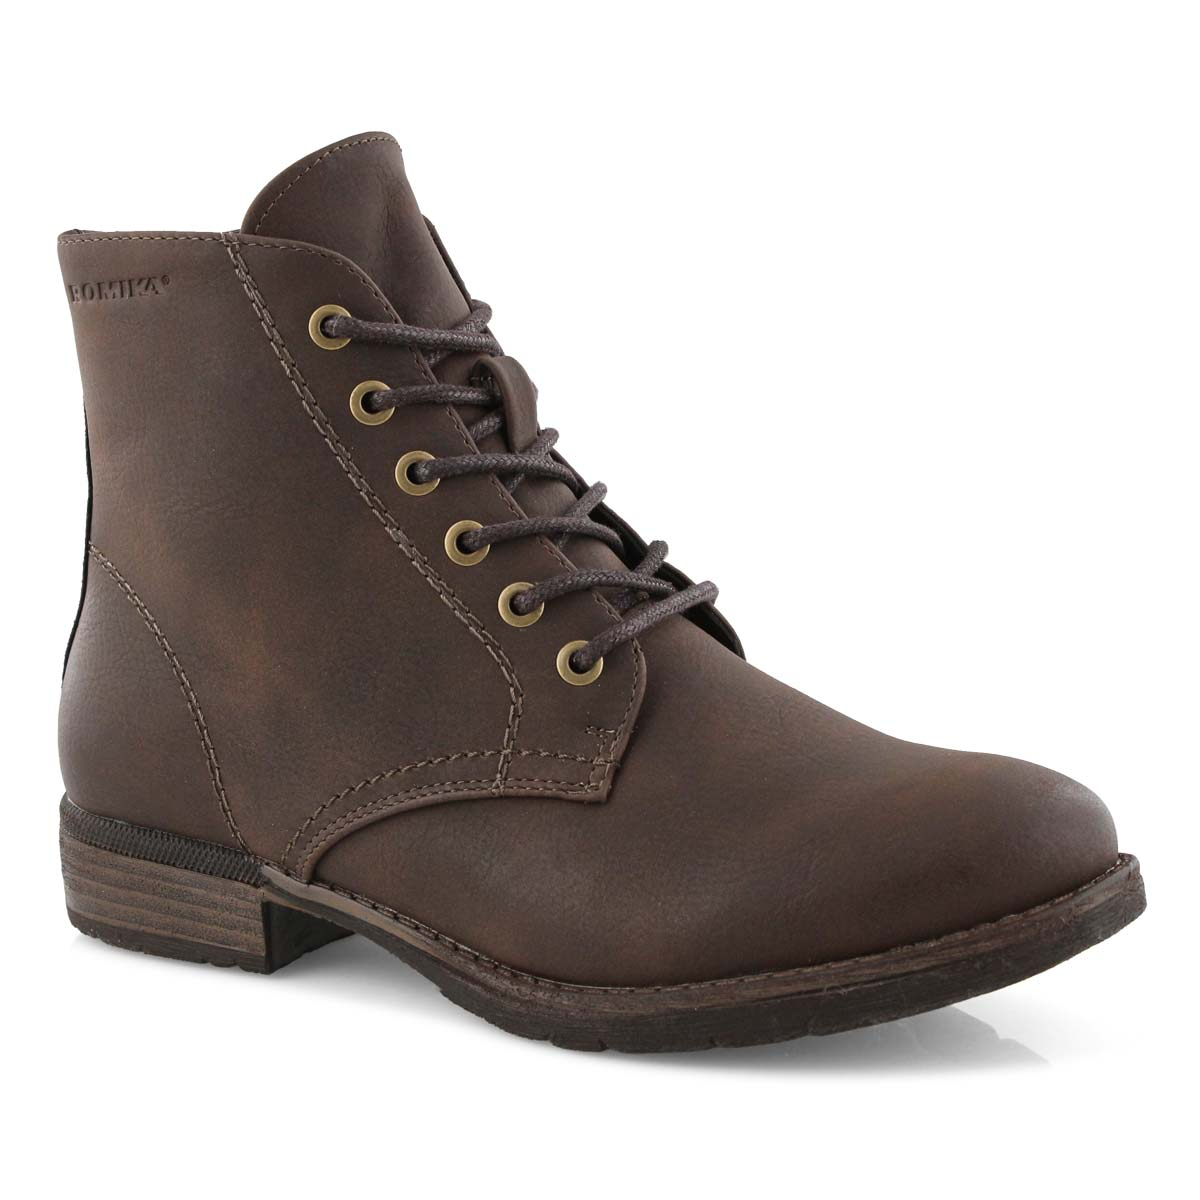 Botte militaire Wendy 05, moro, fem.